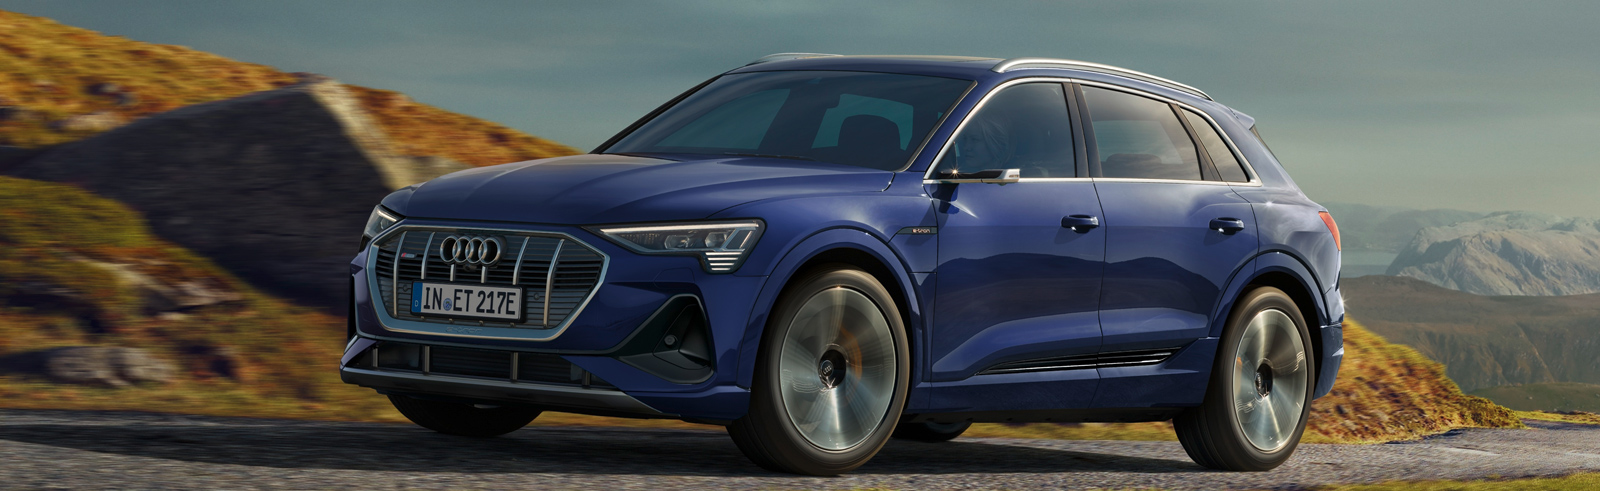 2020 Audi e-tron gets an update, increases range by 25 km